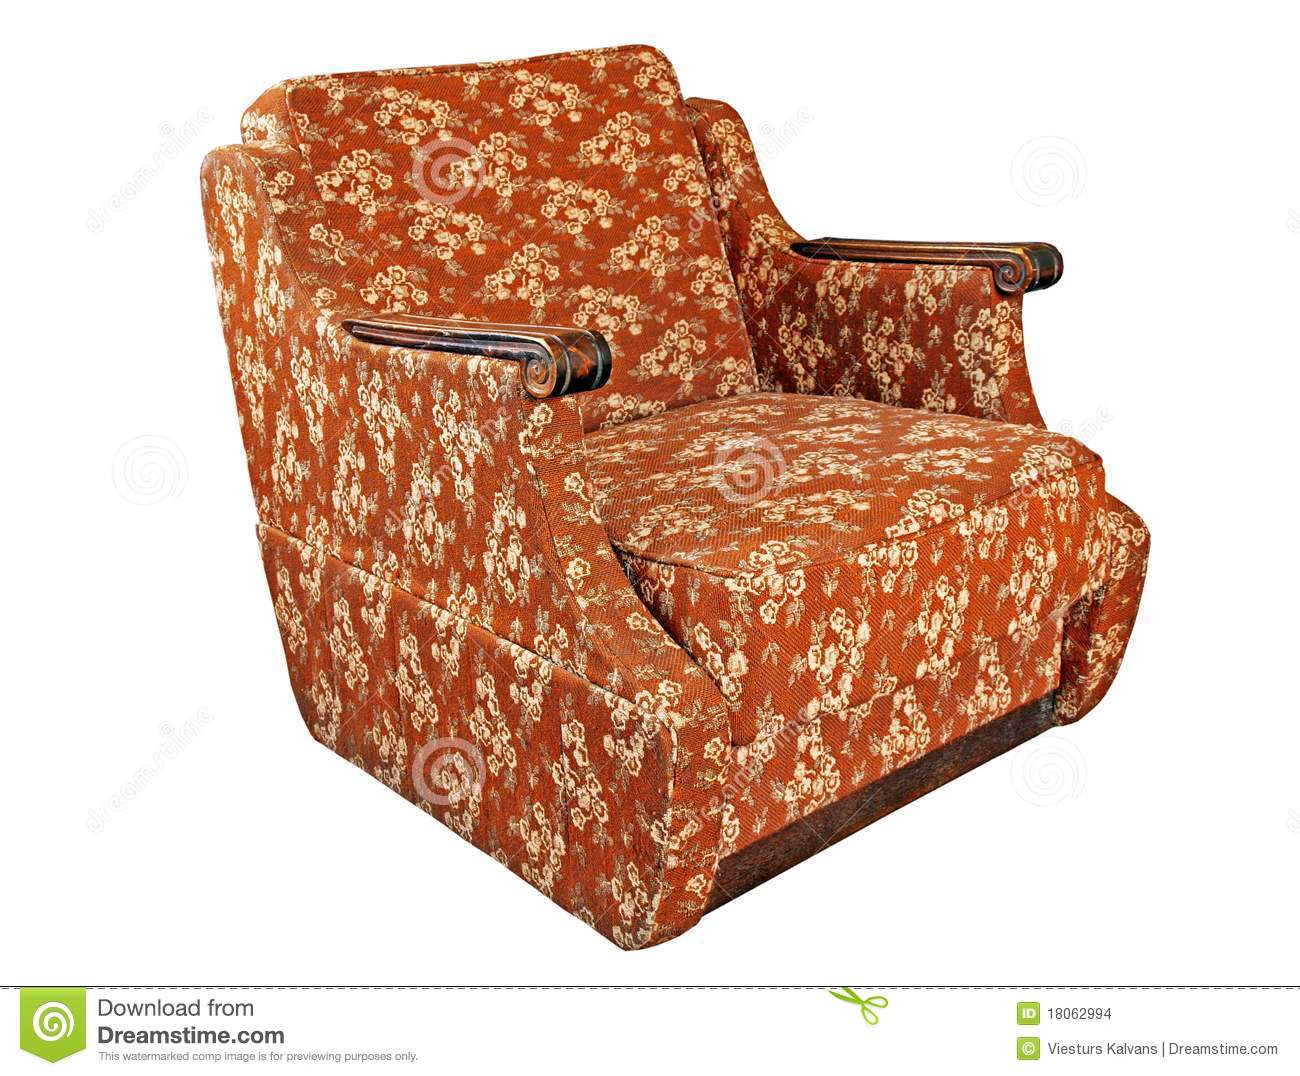 Soft armchair stock photo. Image of resting, isolated ...